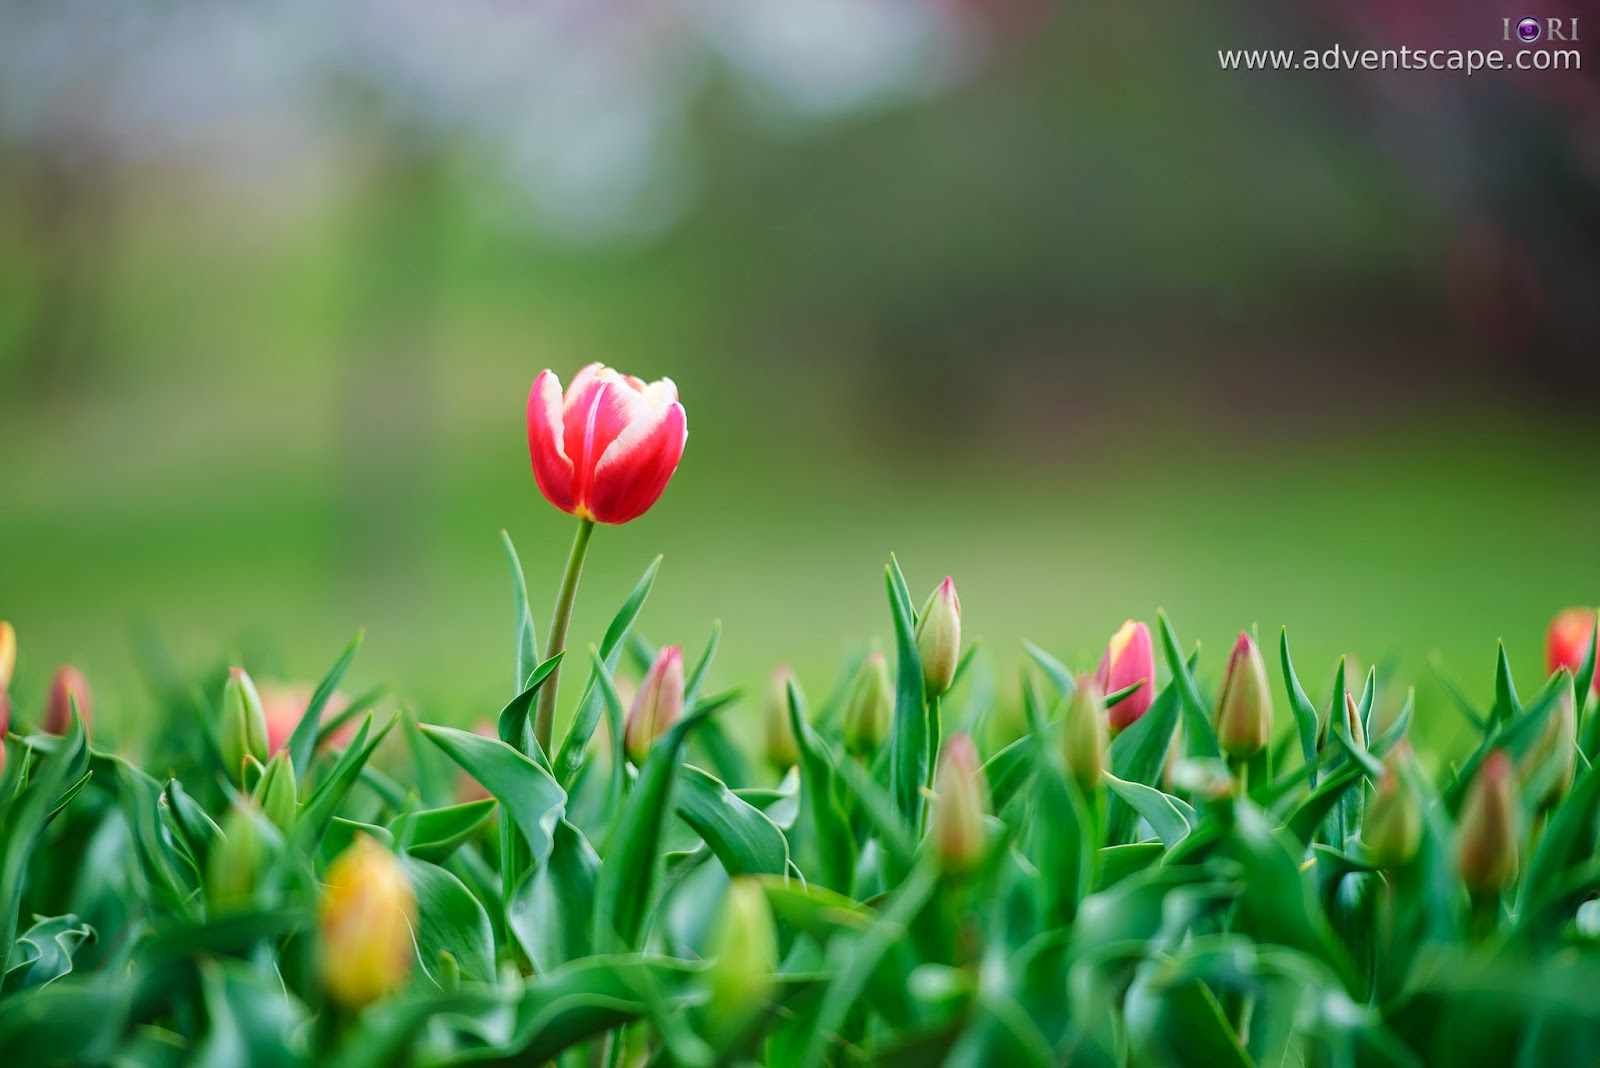 Philip Avellana, adventscape, iori, Tulip Top Gardens, garden, spring, NSW, New South Wales, Sutton, Old Federal Highway, Bywong, 2621, tulip, alone